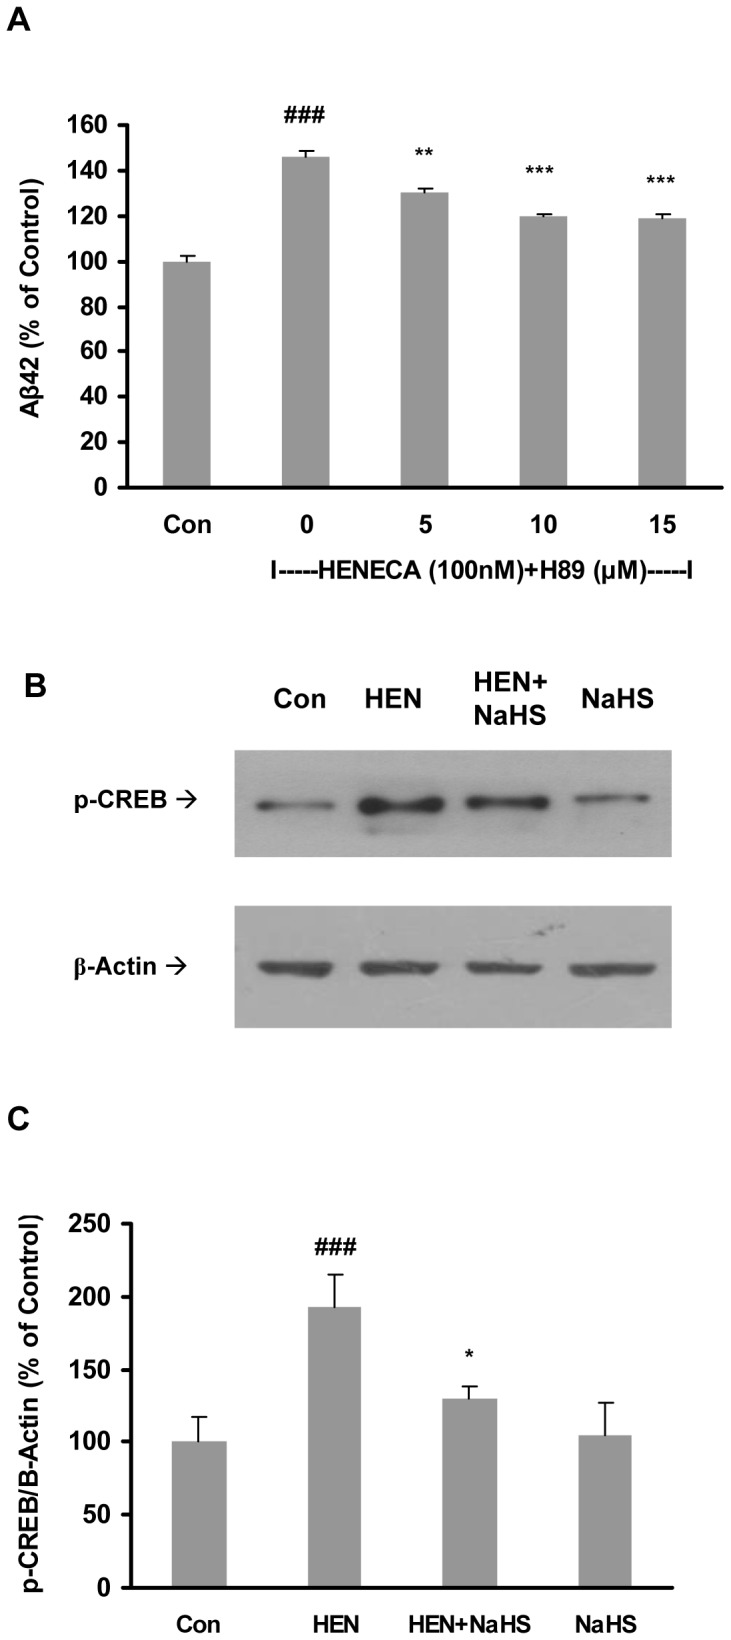 Effect of NaHS on Aβ42 production involved PKA and CREB. A : Effect of HENECA (100 nM) on Aβ42 formation was abolished by a PKA inhibitor, H89 (5, 10 and 15 µM). B–C : Representative gel (B) and histogram (C) depicting that pretreatment with NaHS (100 µM, 12 hours) attenuated the effects of HENECA (100 nM, 24 hours) on phosphorylation of CREB. Control values were adjusted to 100%. Data are given as means ± S.E.M, n = 4–6. ### p